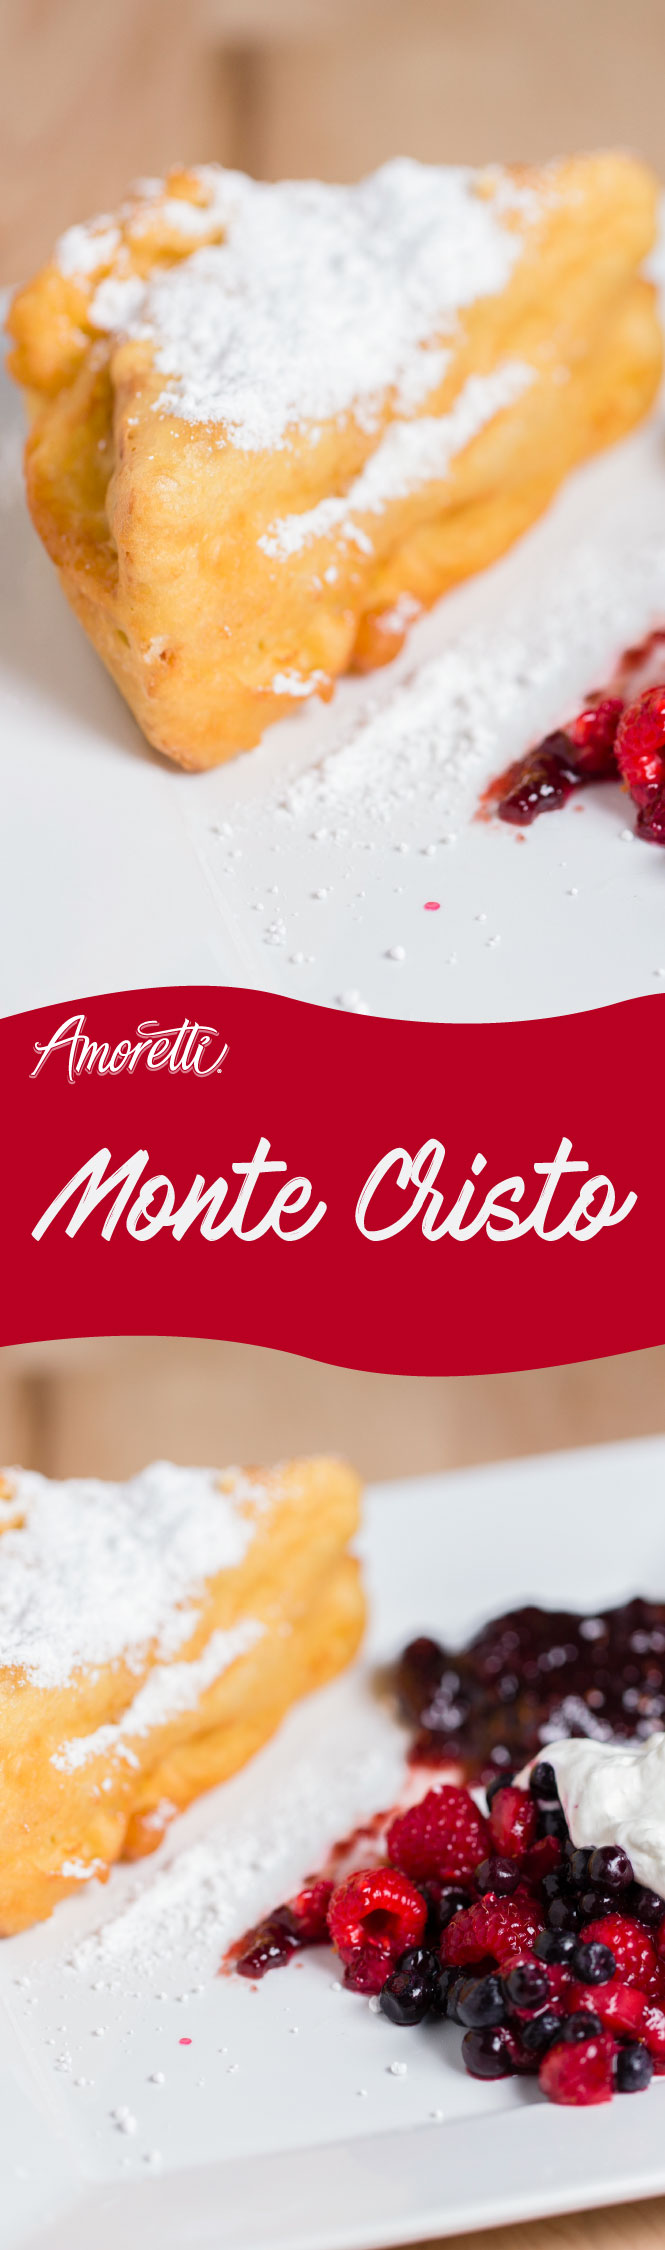 Make Monte Cristos for brunch!